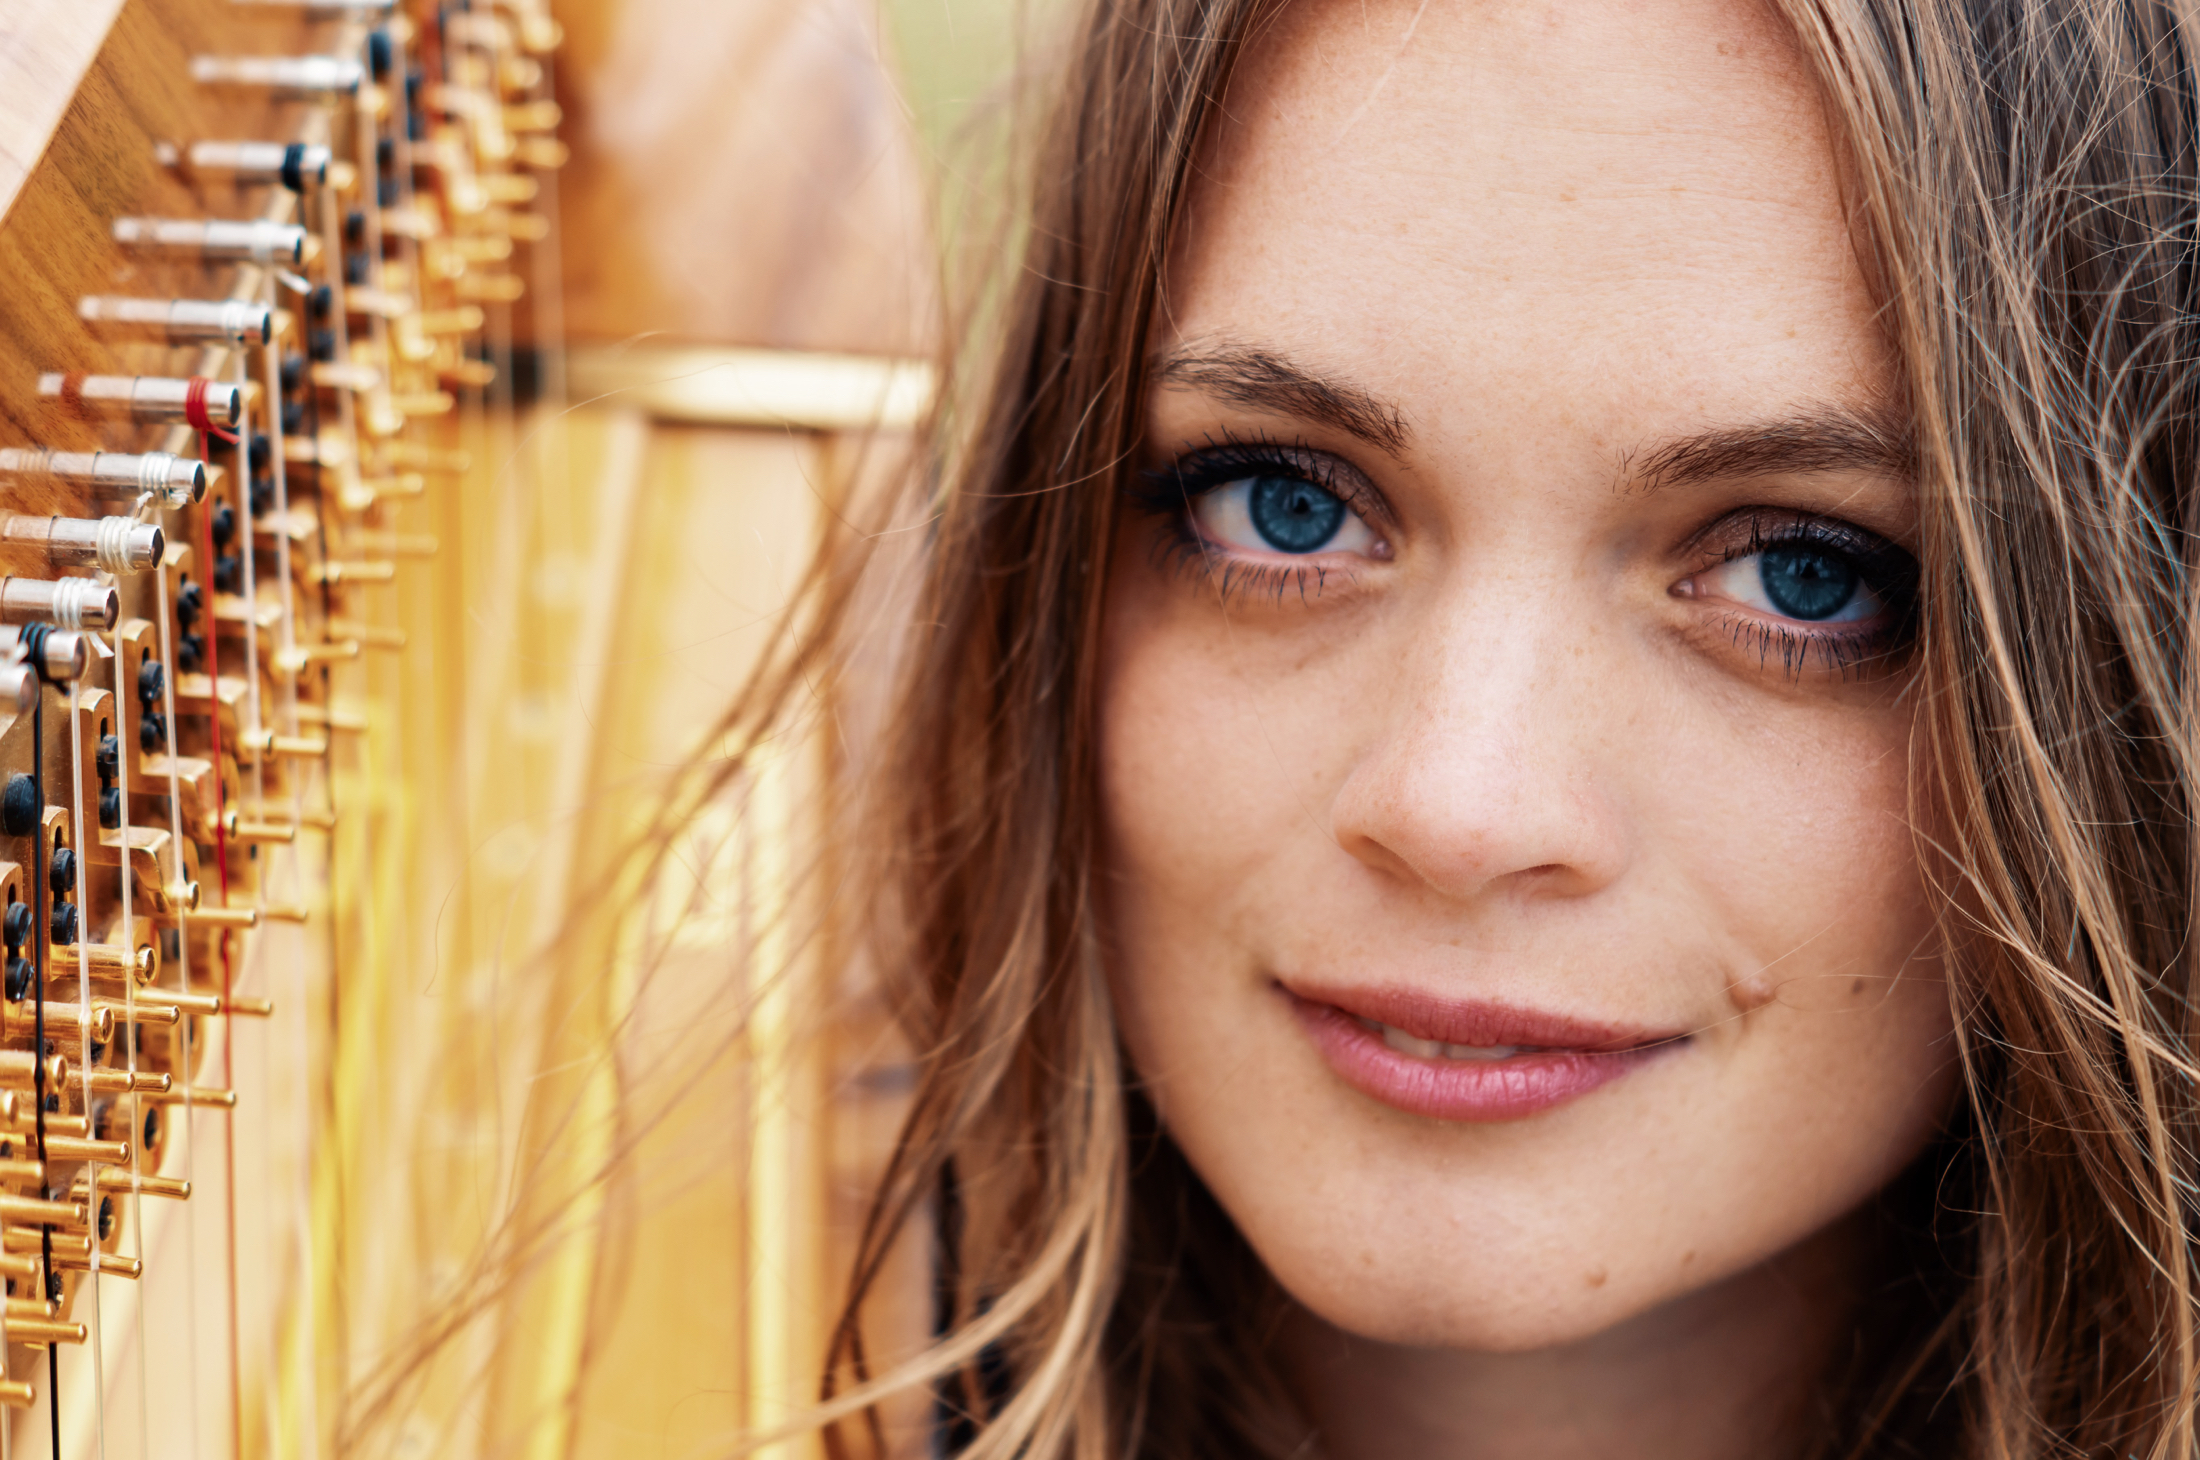 Up close portrait photography by Jack Watkins for award-winning classical musician and harpist, Lucy Nolan